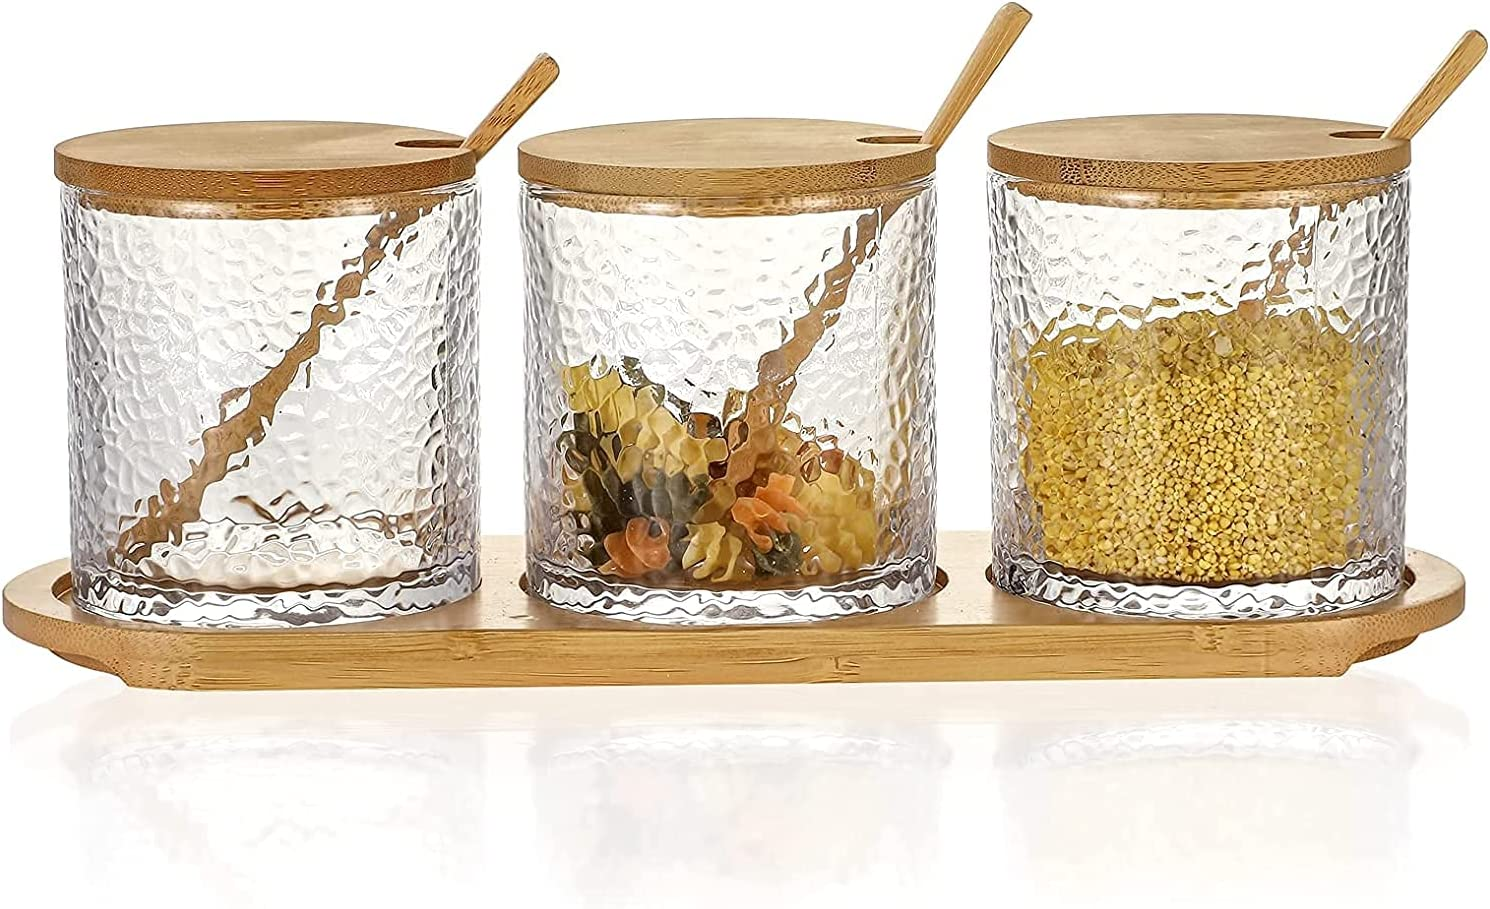 Gaier Omita Spice Storage Houston Mall Jar with and Spoons set of Bamboo Lids San Jose Mall